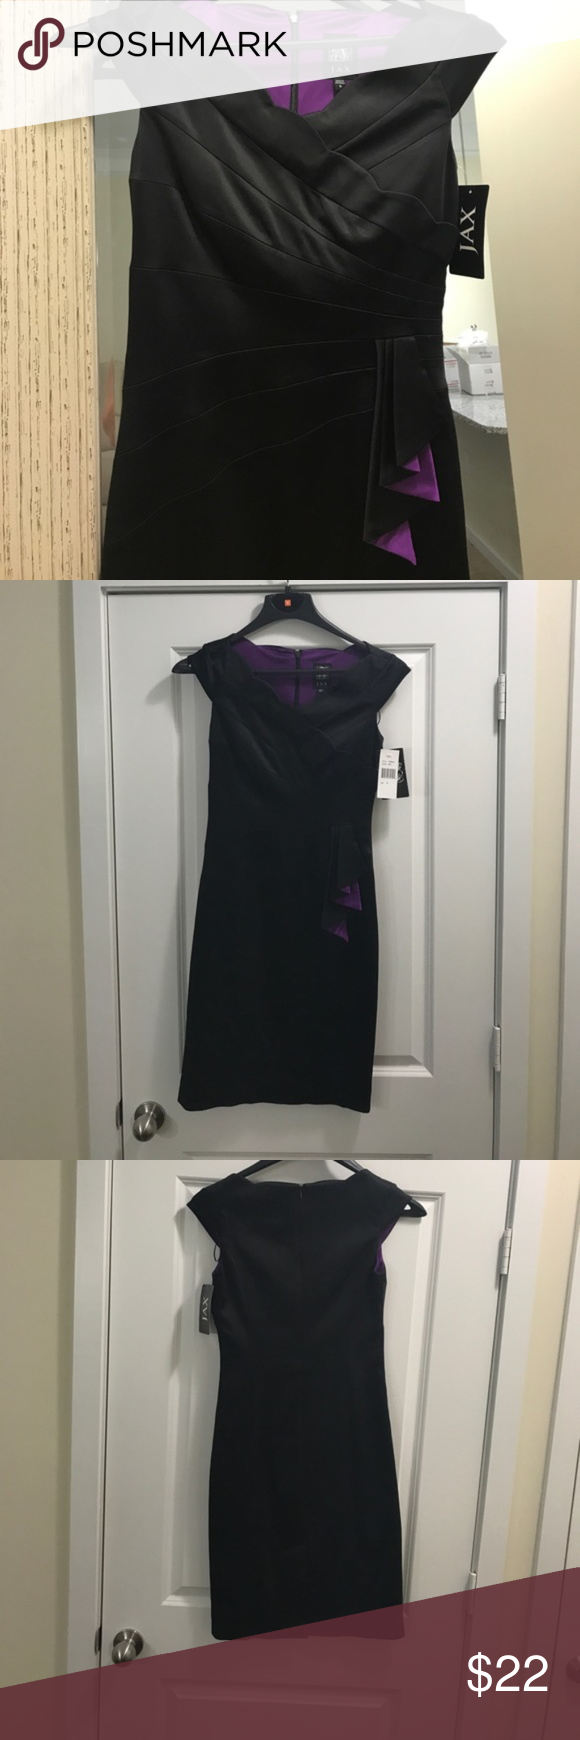 Nwt jax black cocktail dress sz 4 black cocktail dress purple nwt jax black cocktail dress sz 4 ombrellifo Gallery